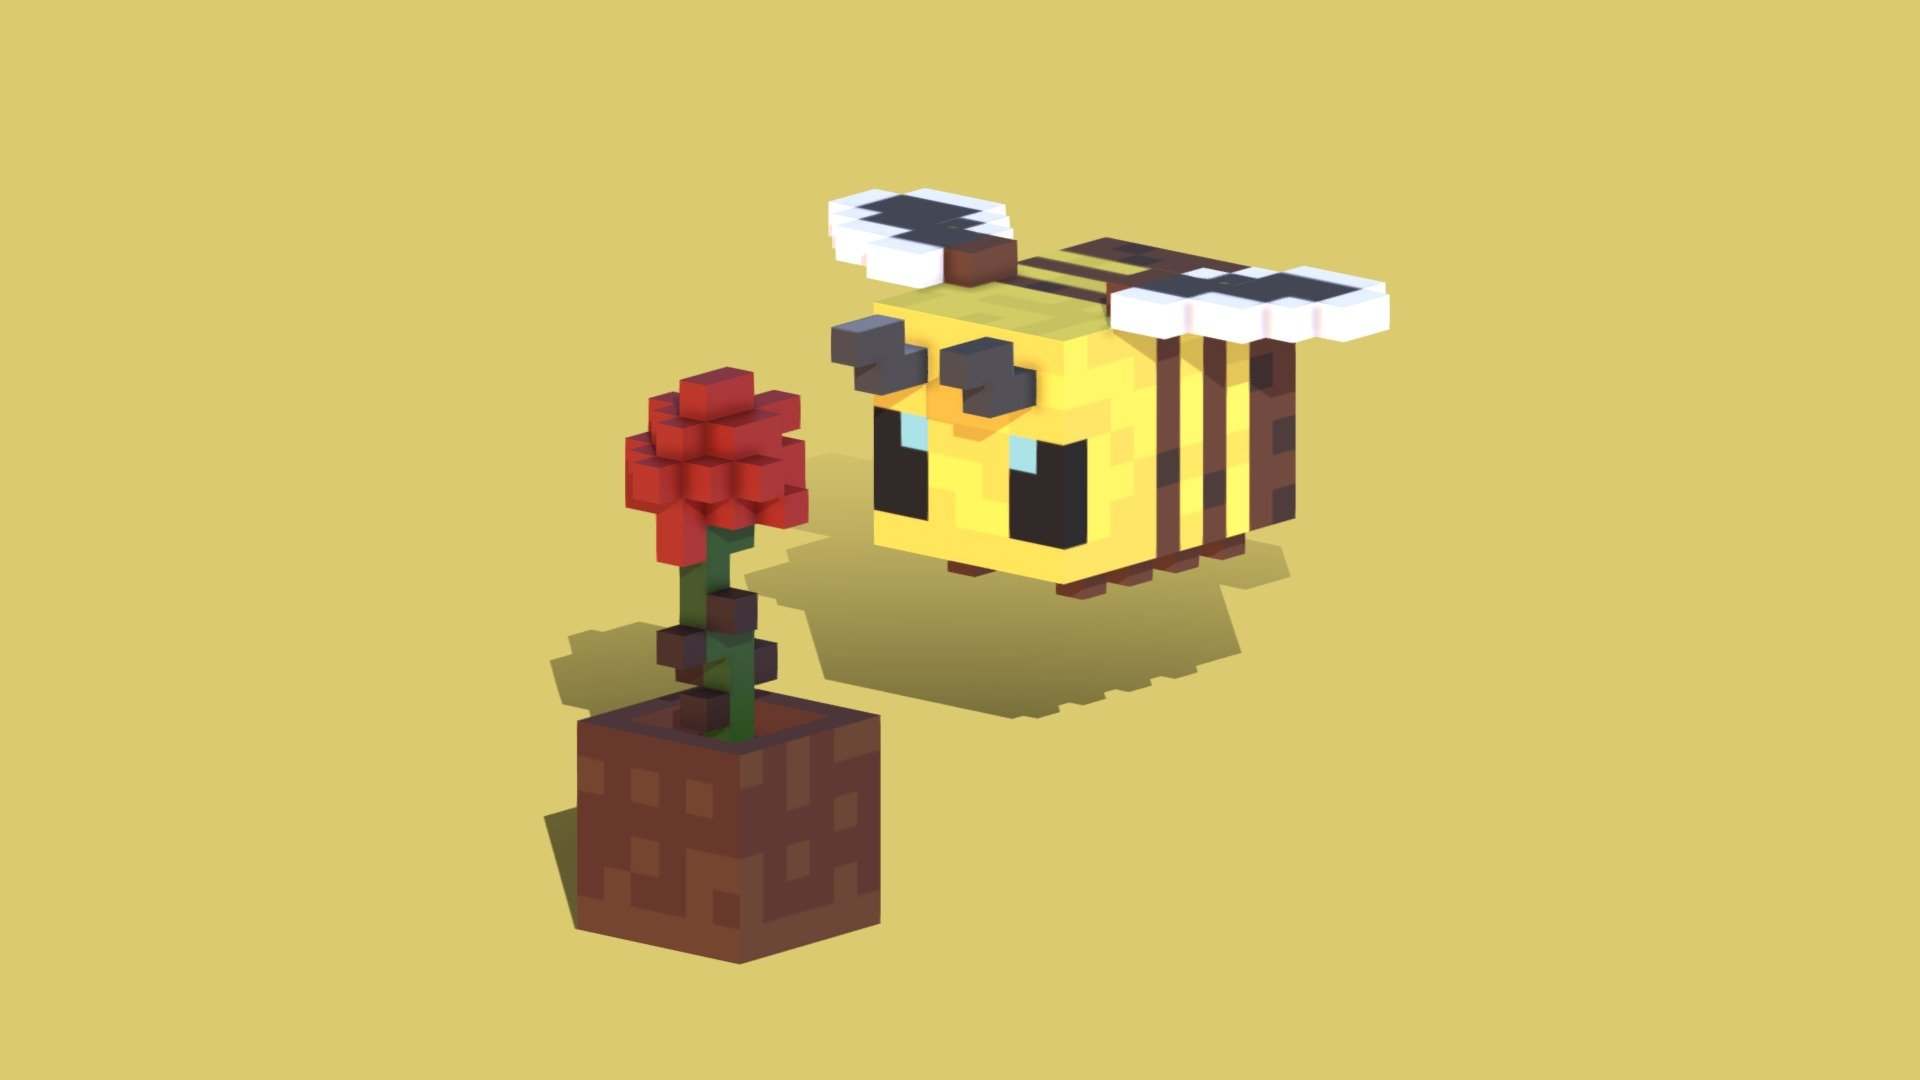 MINECRAFT BEE WITH 3D FLOWER Download Free 3D model by Jackmcm